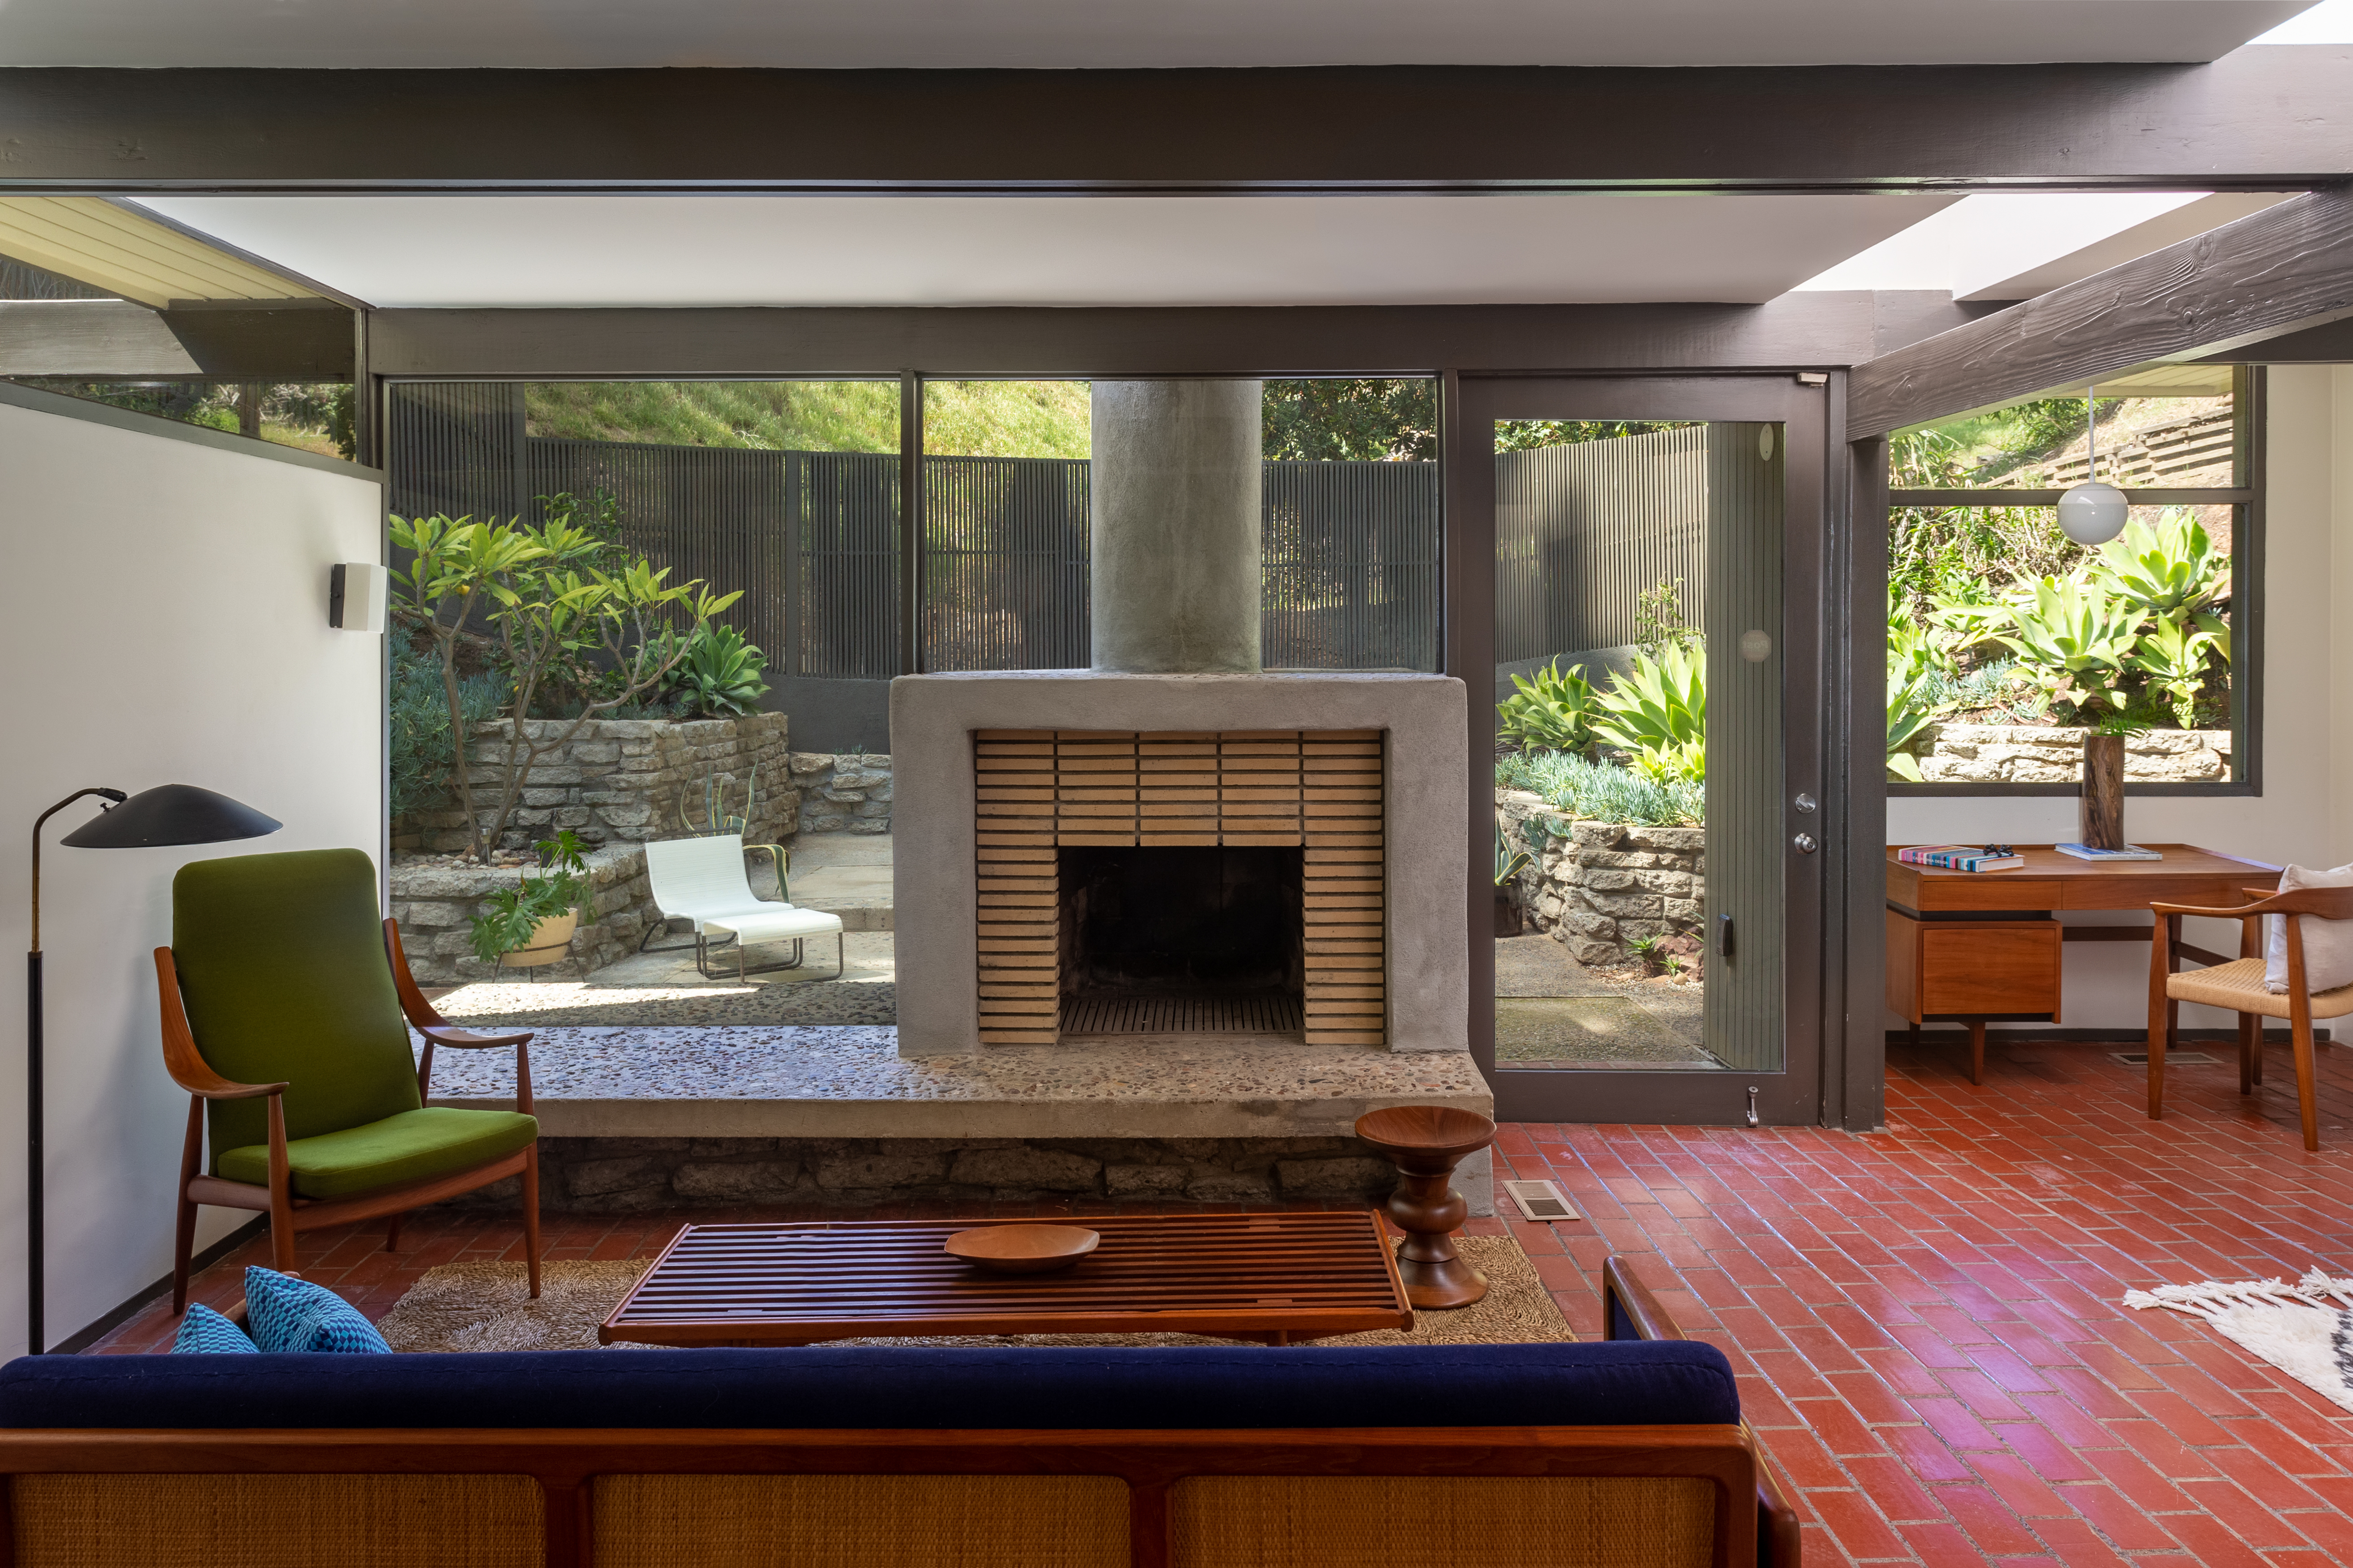 A room with brick floors, glass walls, and a fireplace